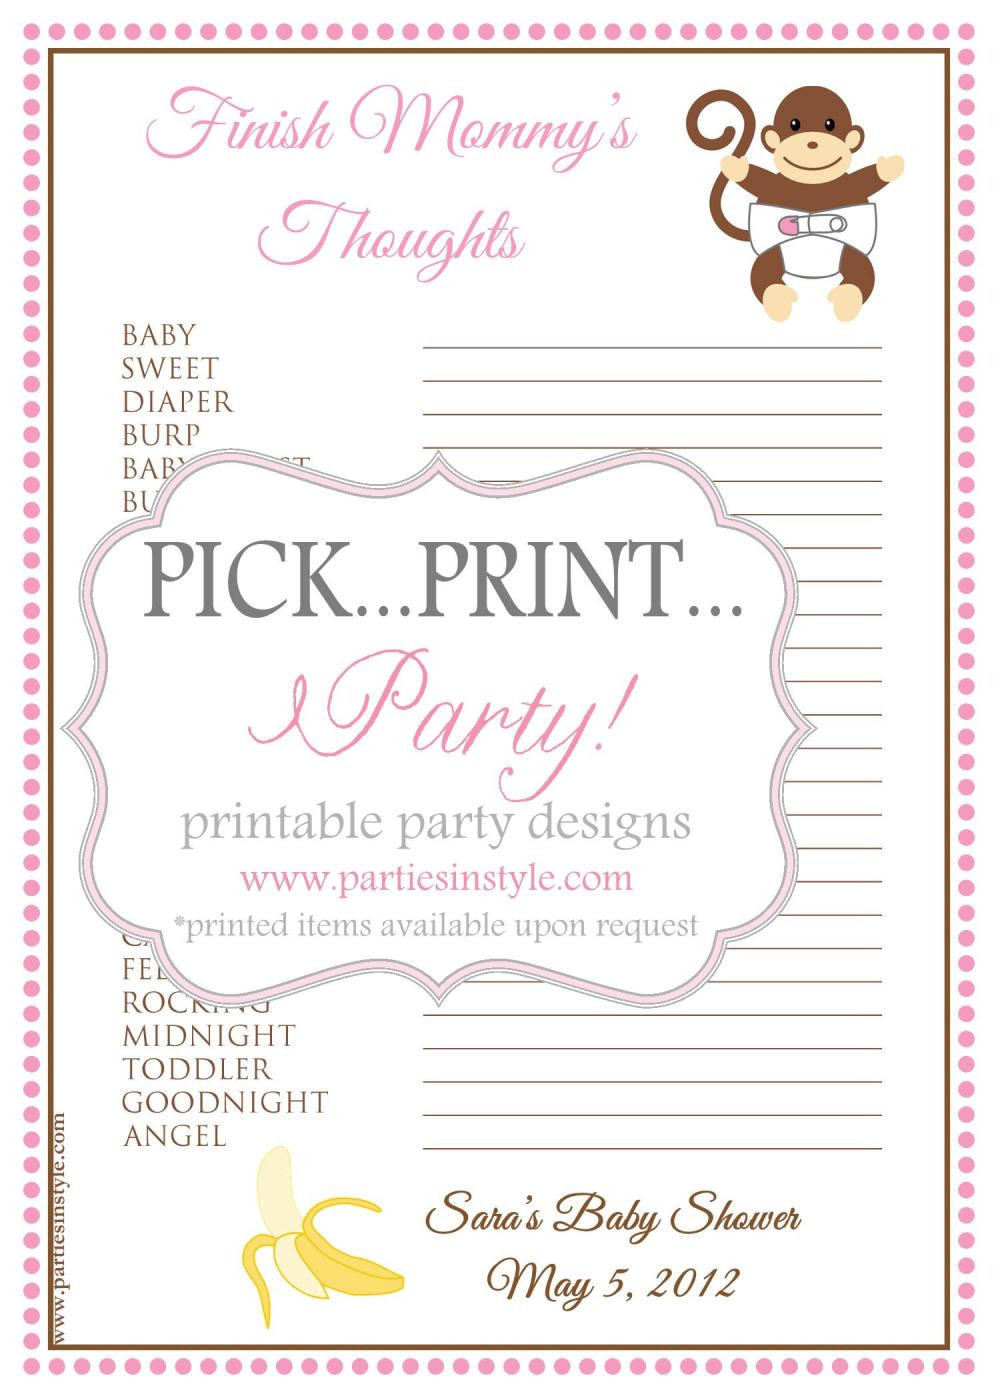 Best ideas about DIY Baby Shower Games . Save or Pin Baby Shower Game Finish Mommy s Thoughts Printable DIY Now.